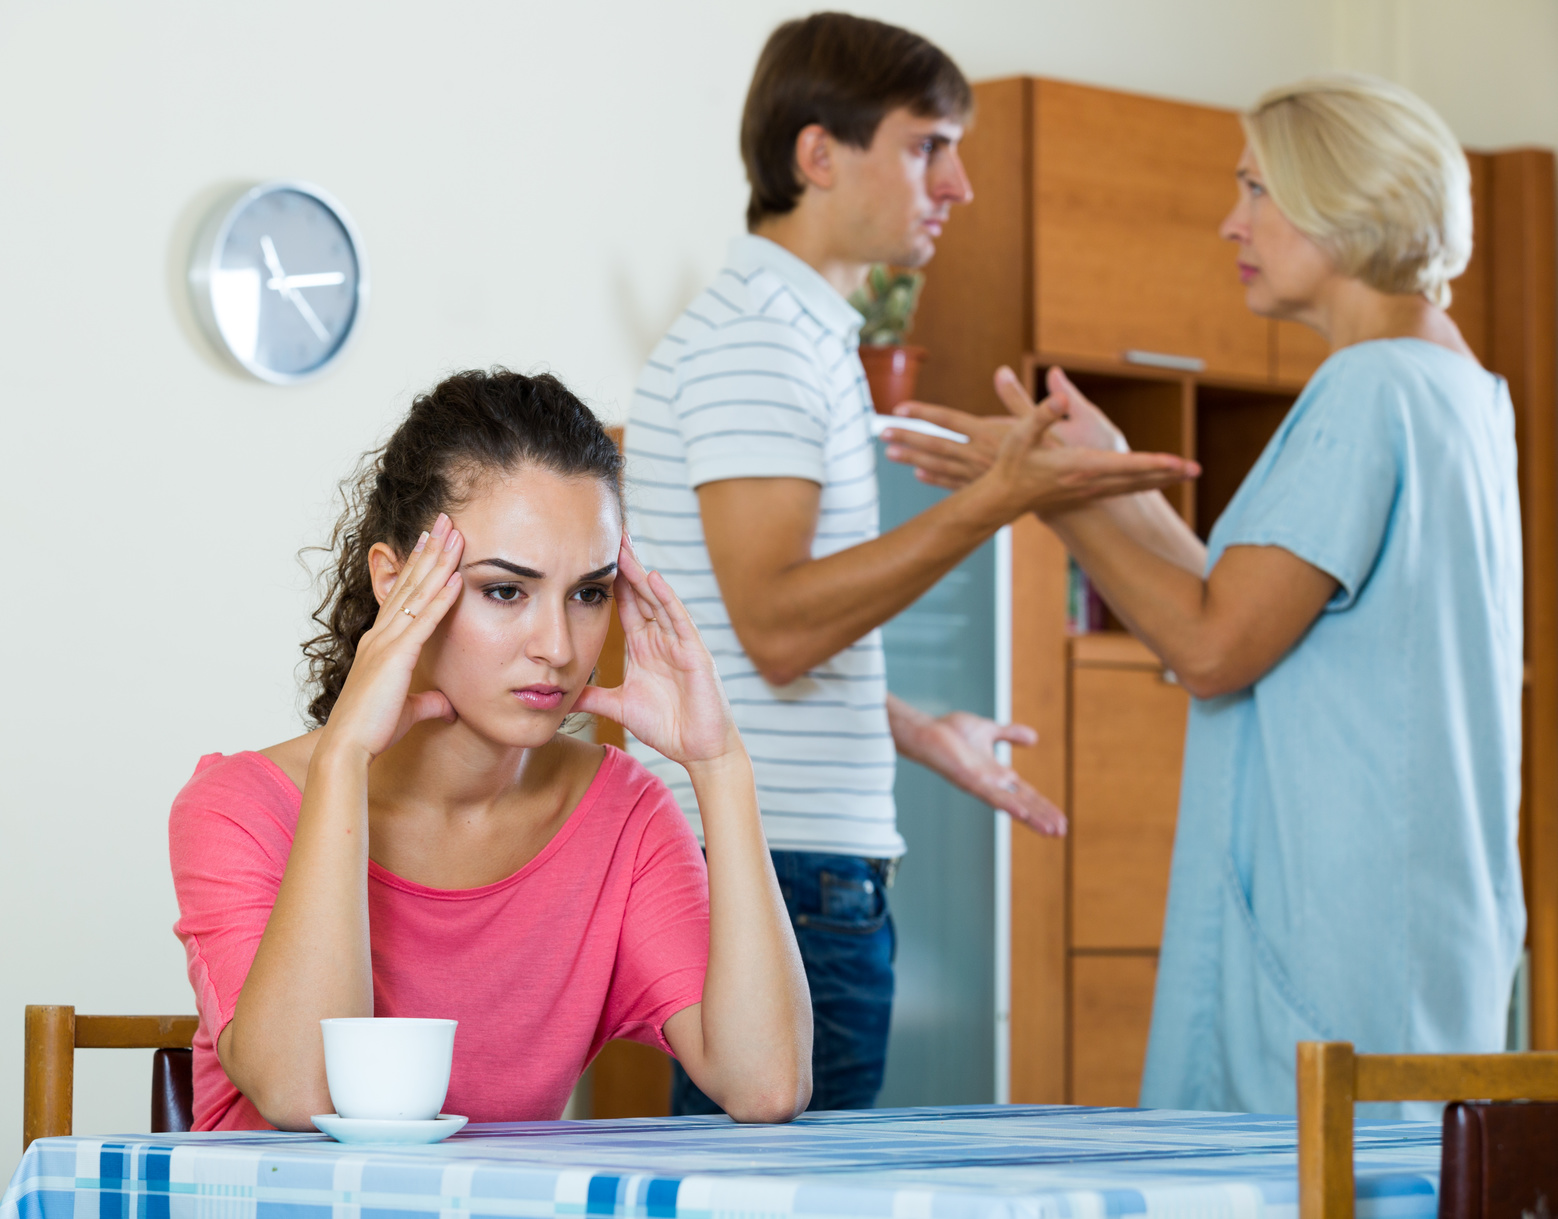 Sad young woman watching husband and mother having fight